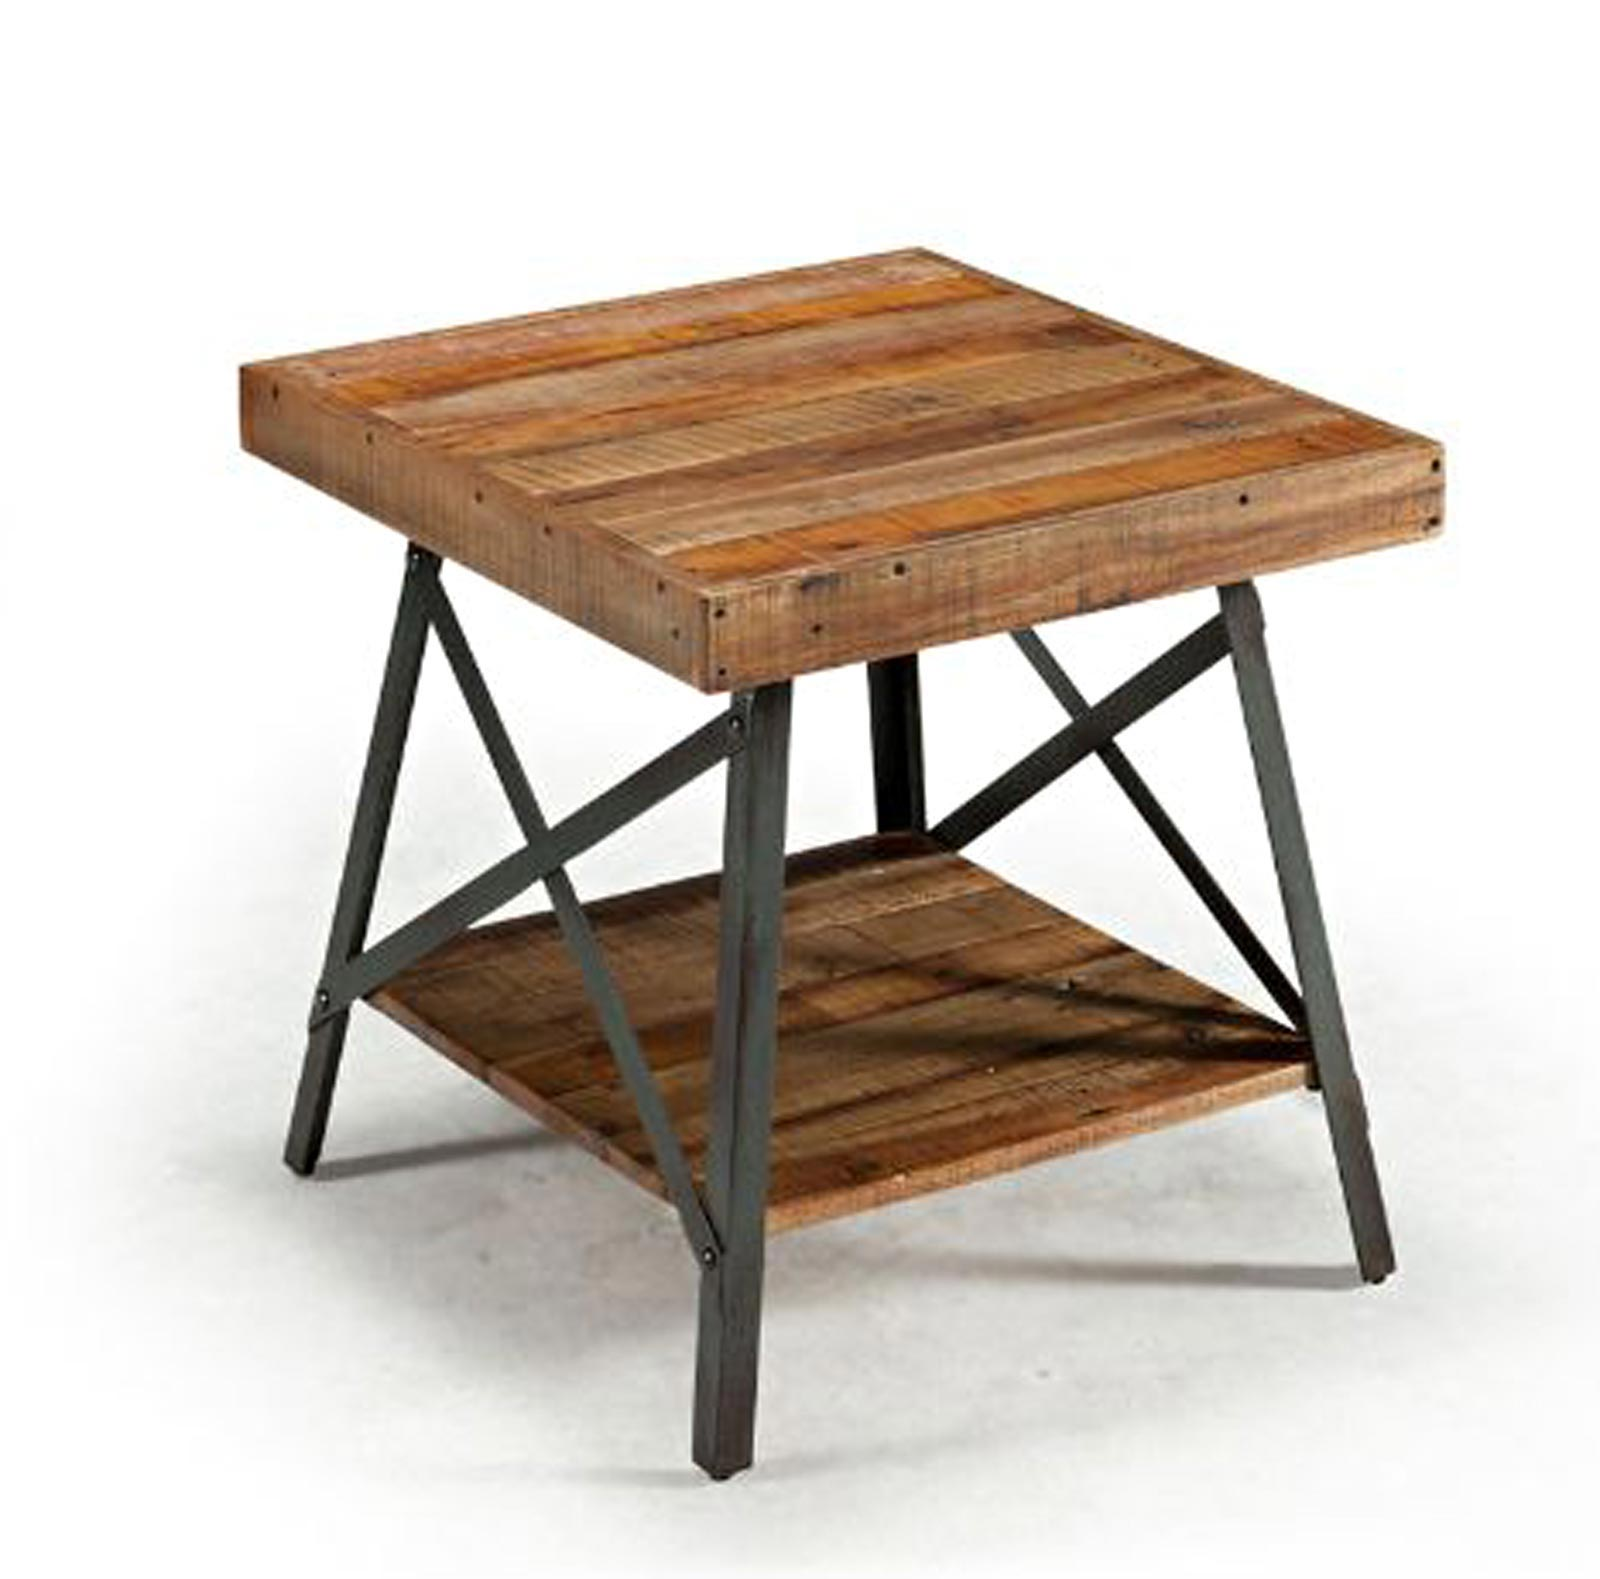 fabulous iron accent table with wrought designs impressive rustic industrial reclaimed wood metal end pedestal unfinished bookcases pier kitchen chairs jcpenney sofa farmhouse